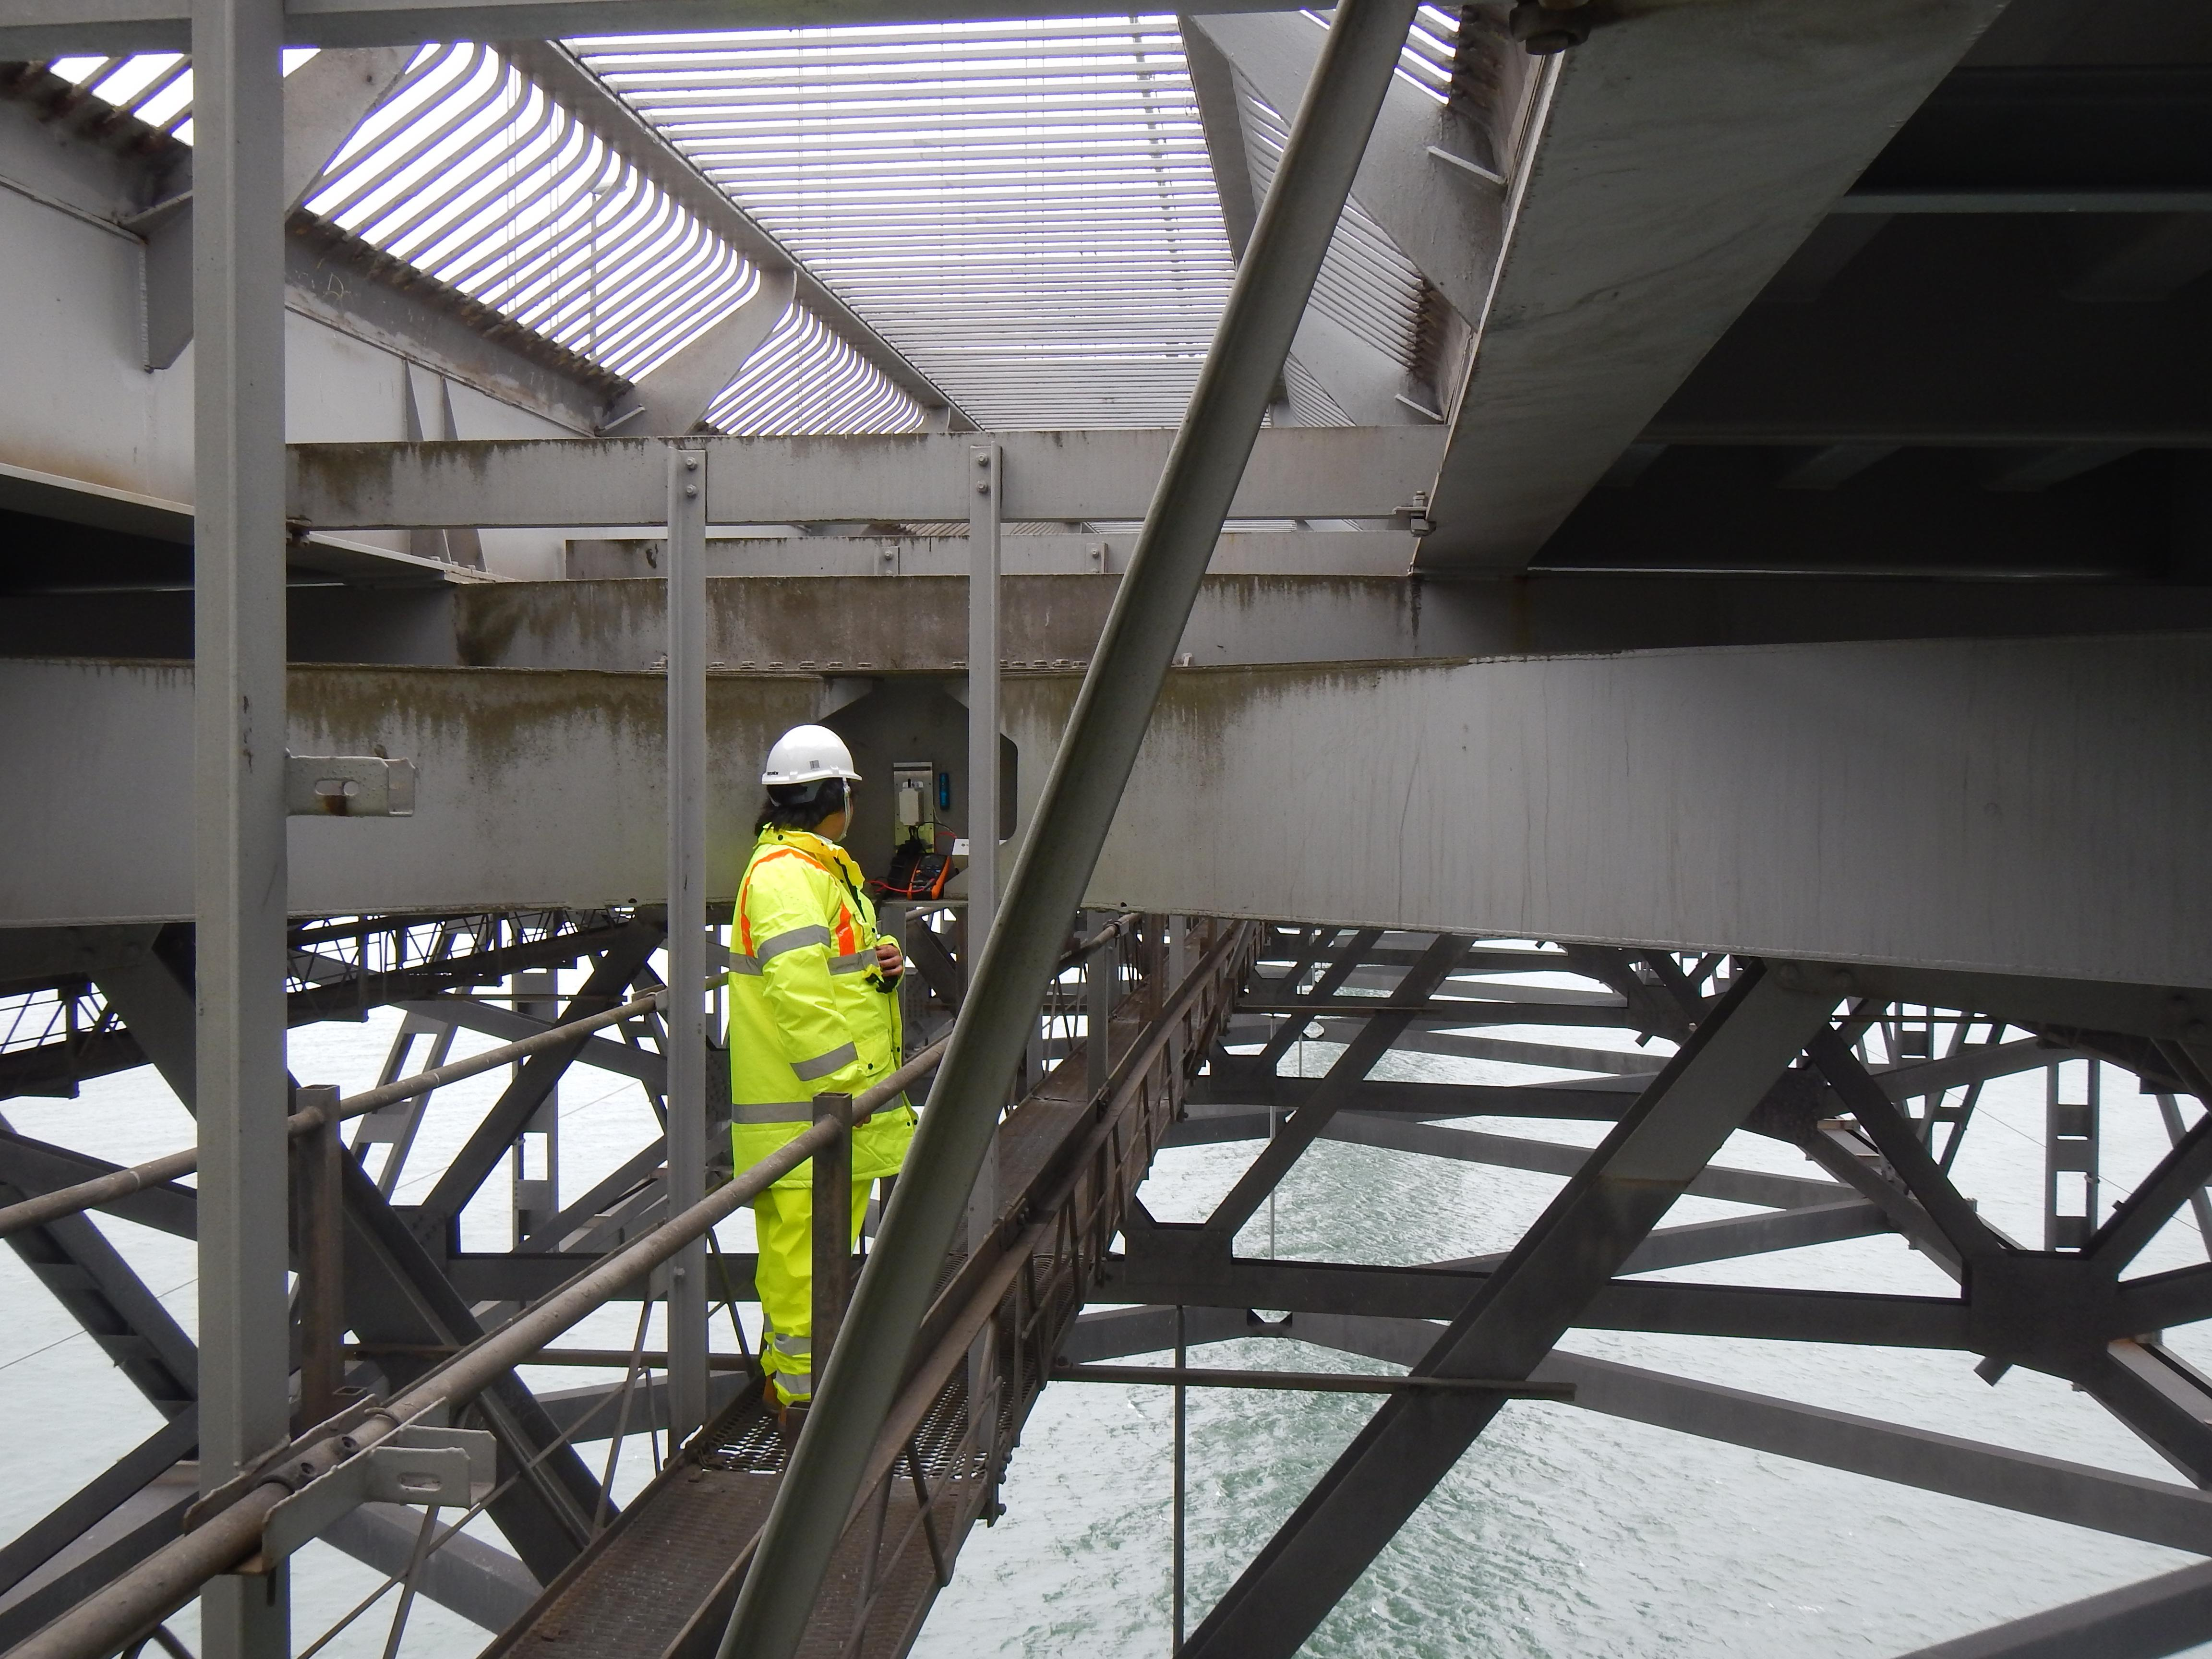 A CSIC vibration energy harvesting device being tested by Dr Yu Jia on the Forth Road Bridge